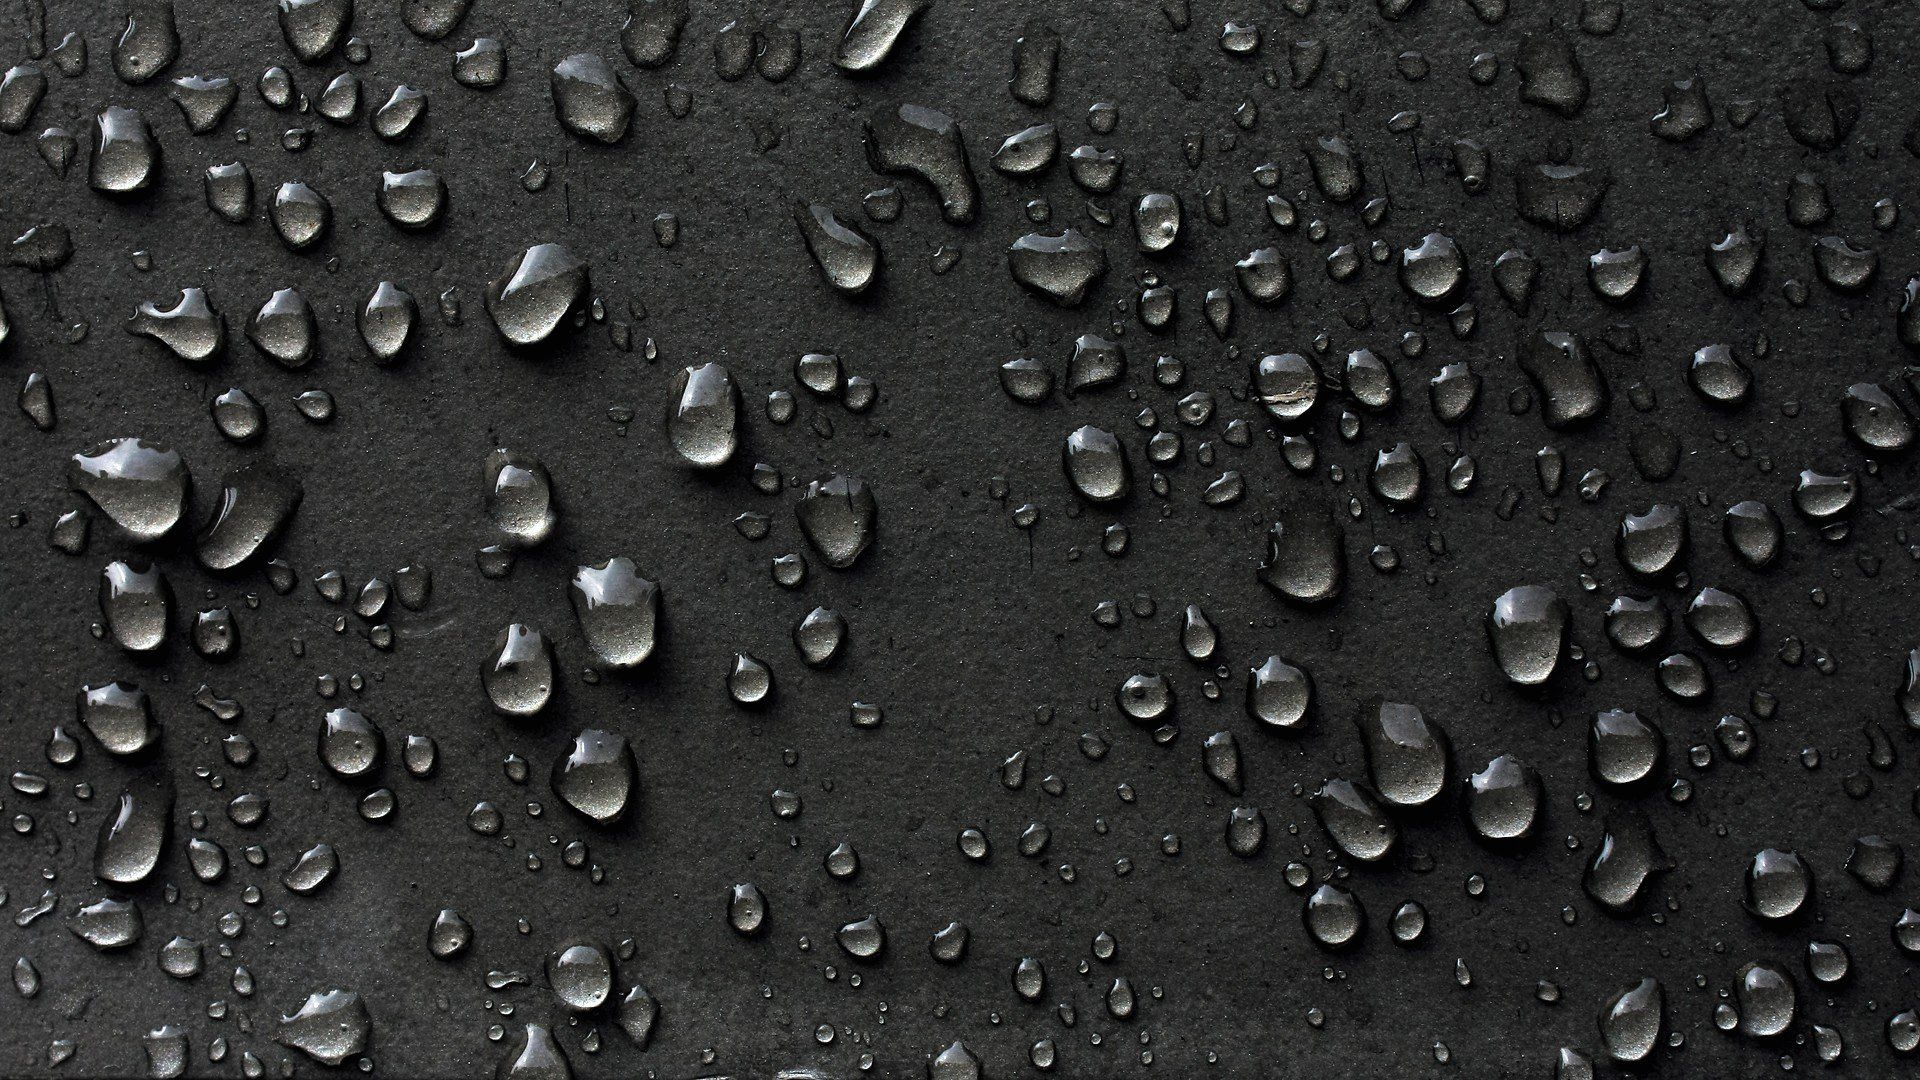 Find the best collection of free Hd wallpapers at Hdwallpapersplace. http://hdwallpapersplace.com/portfolio/z-wallpaper-detailed-waterdrops-1920-x-1080-full-hd/